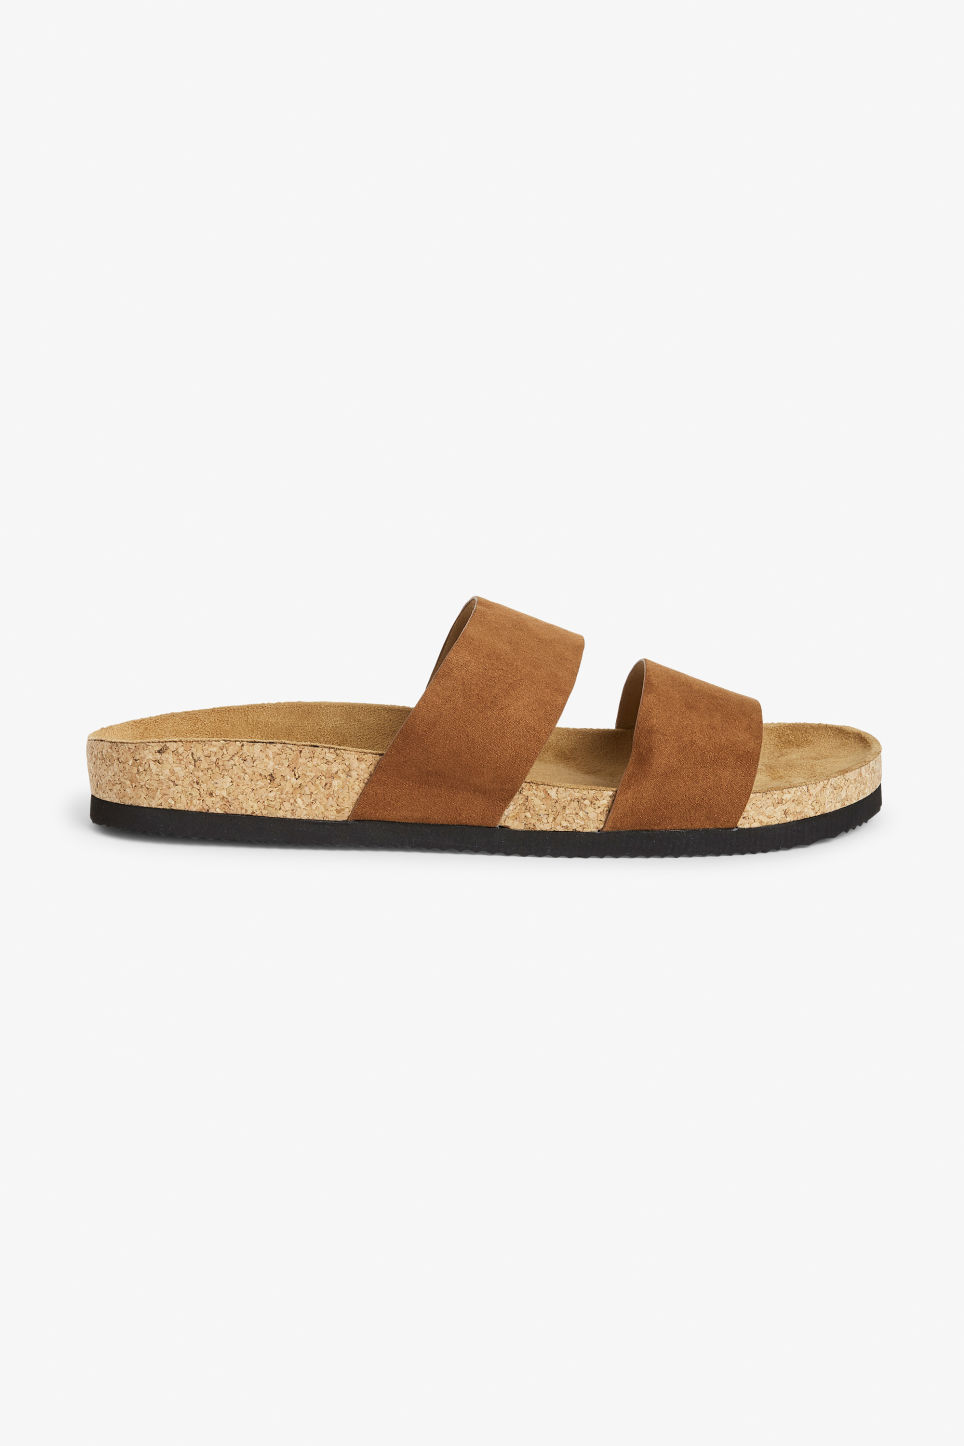 Detailed image of Monki flat sandals in beige